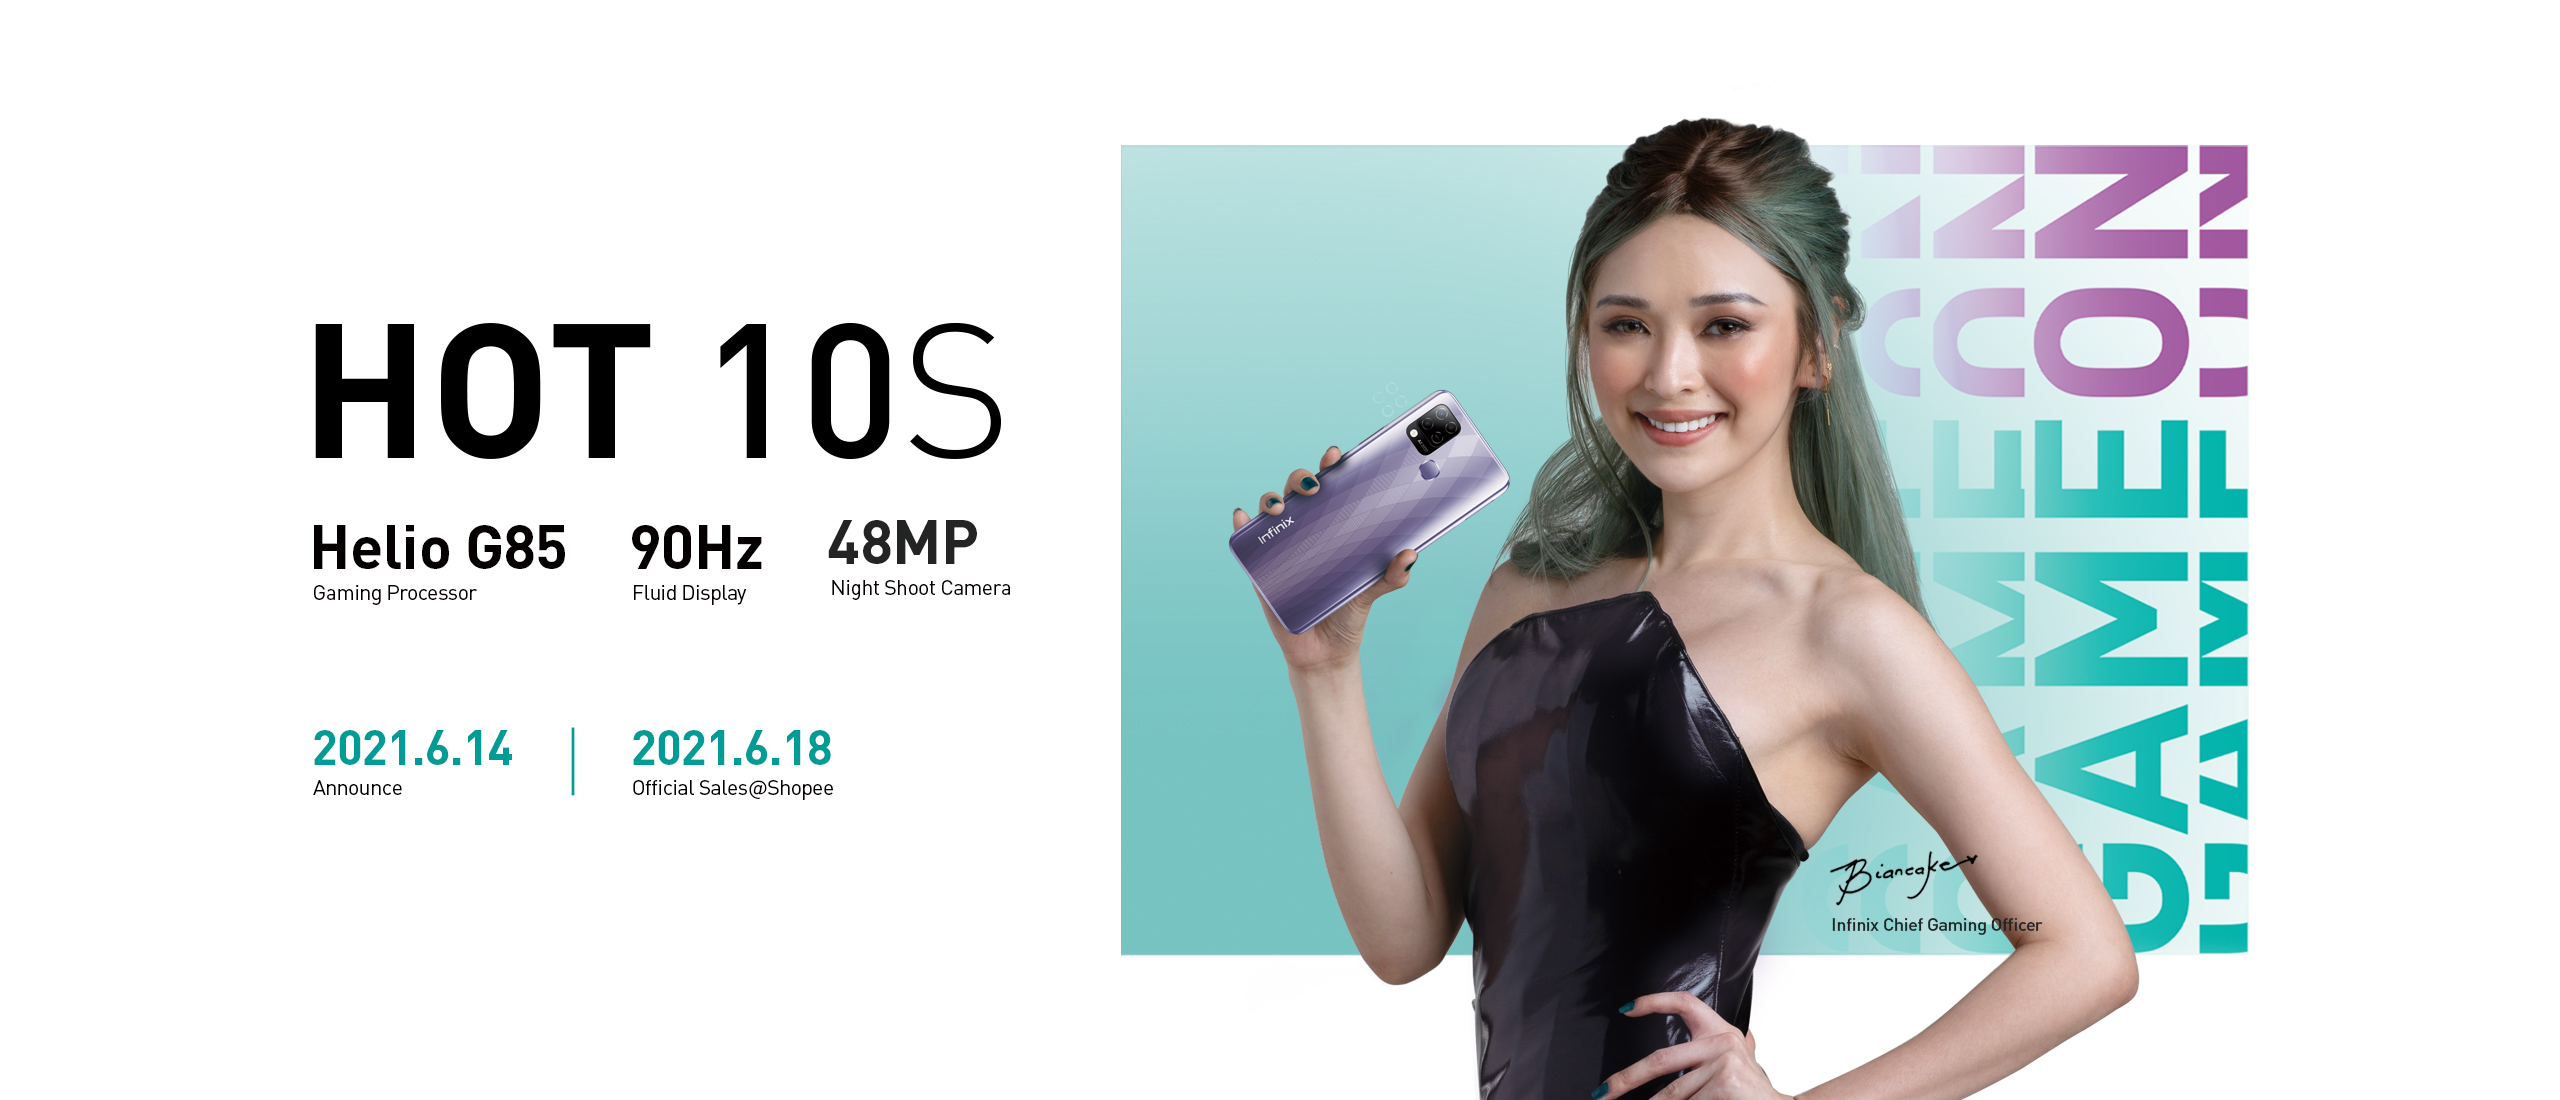 Infinix celebrates Super Brand Days on Shopee from June 15-18